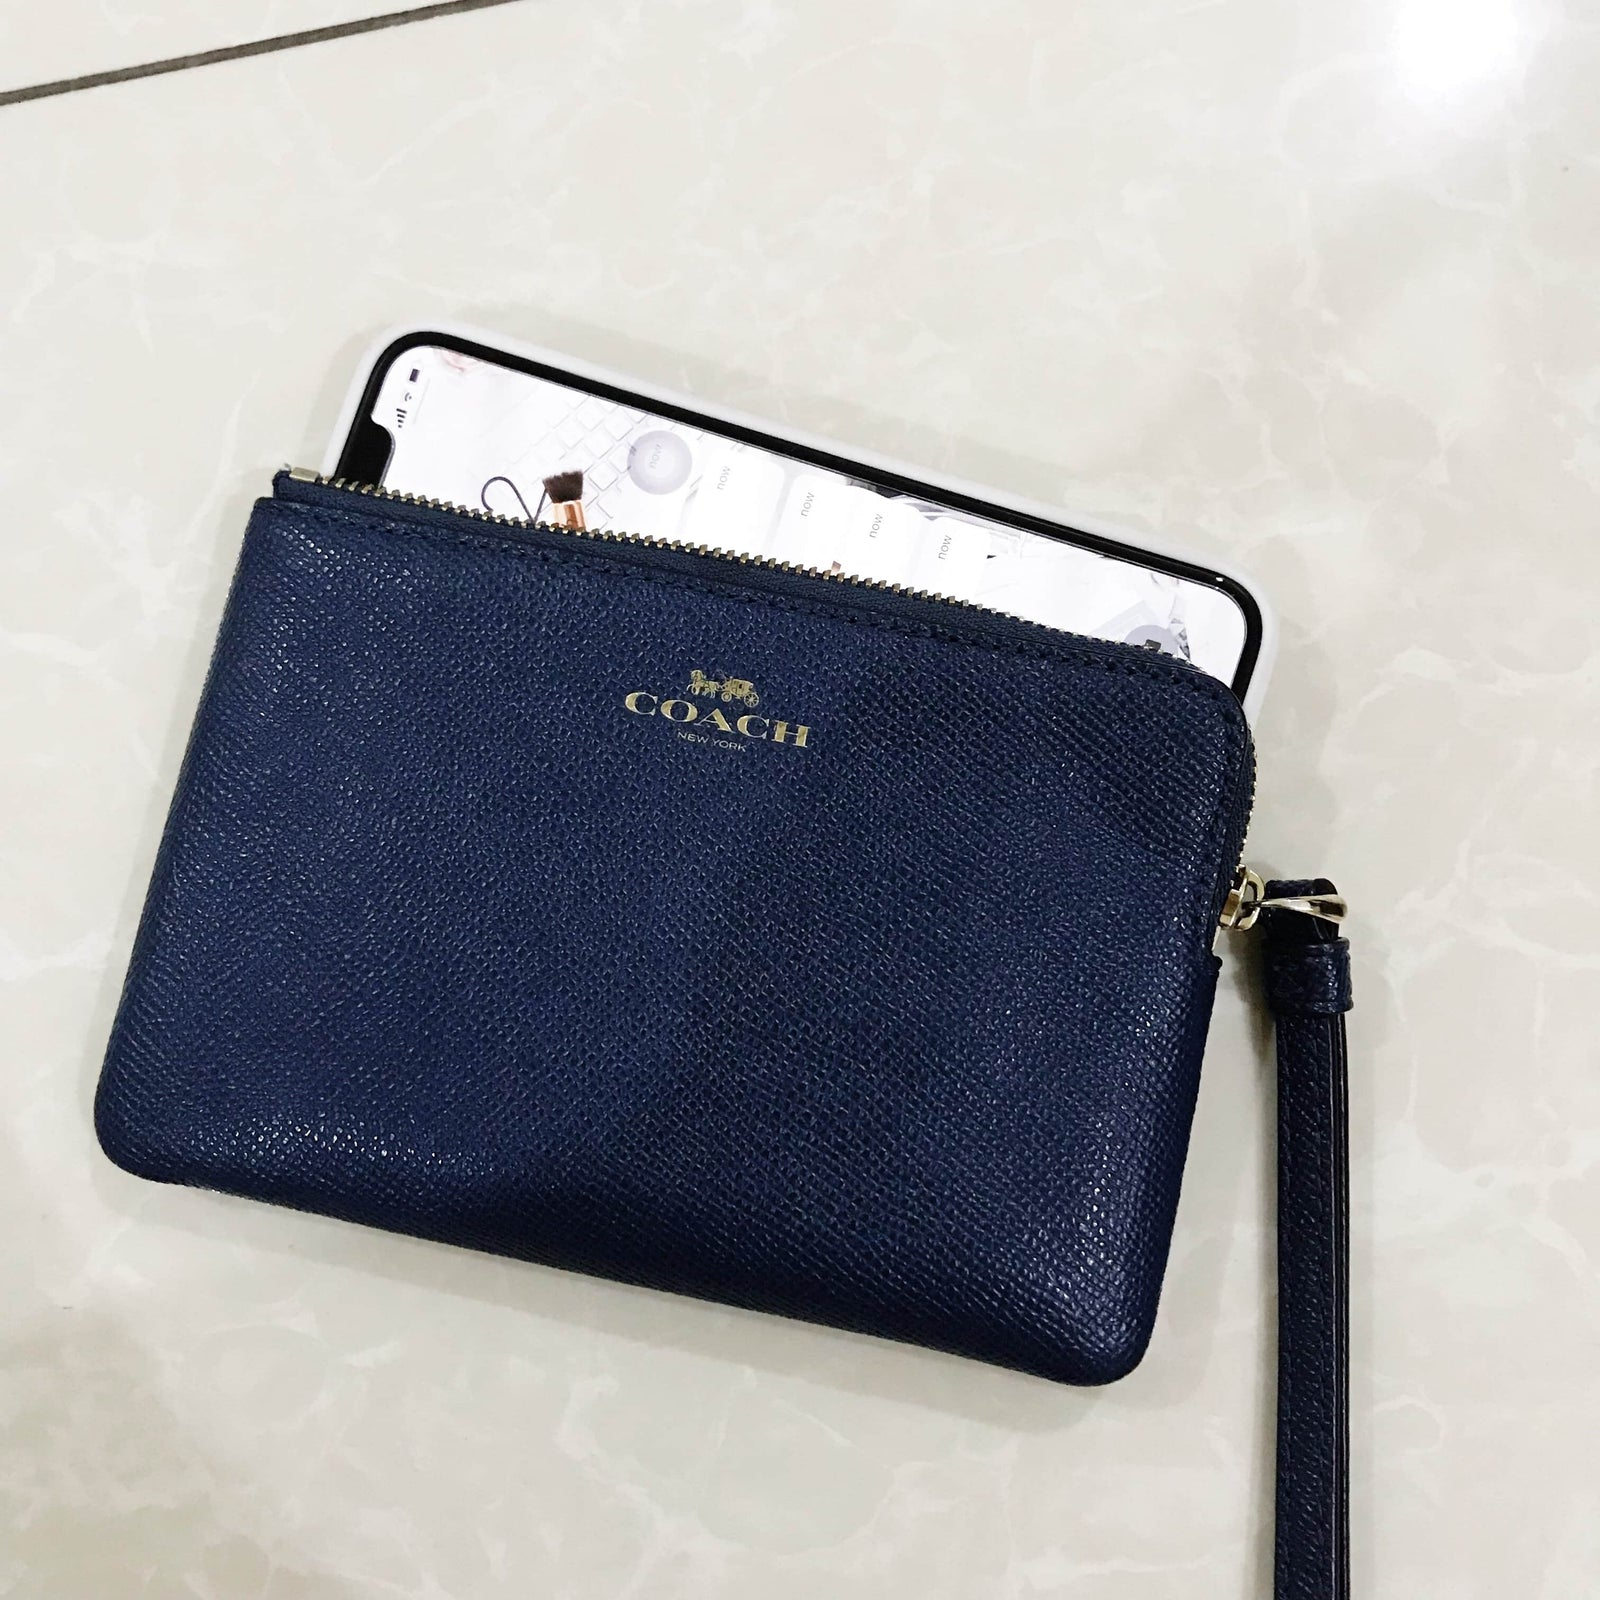 COACH CORNER ZIP WRISTLET IN CROSSGRAIN LEATHER